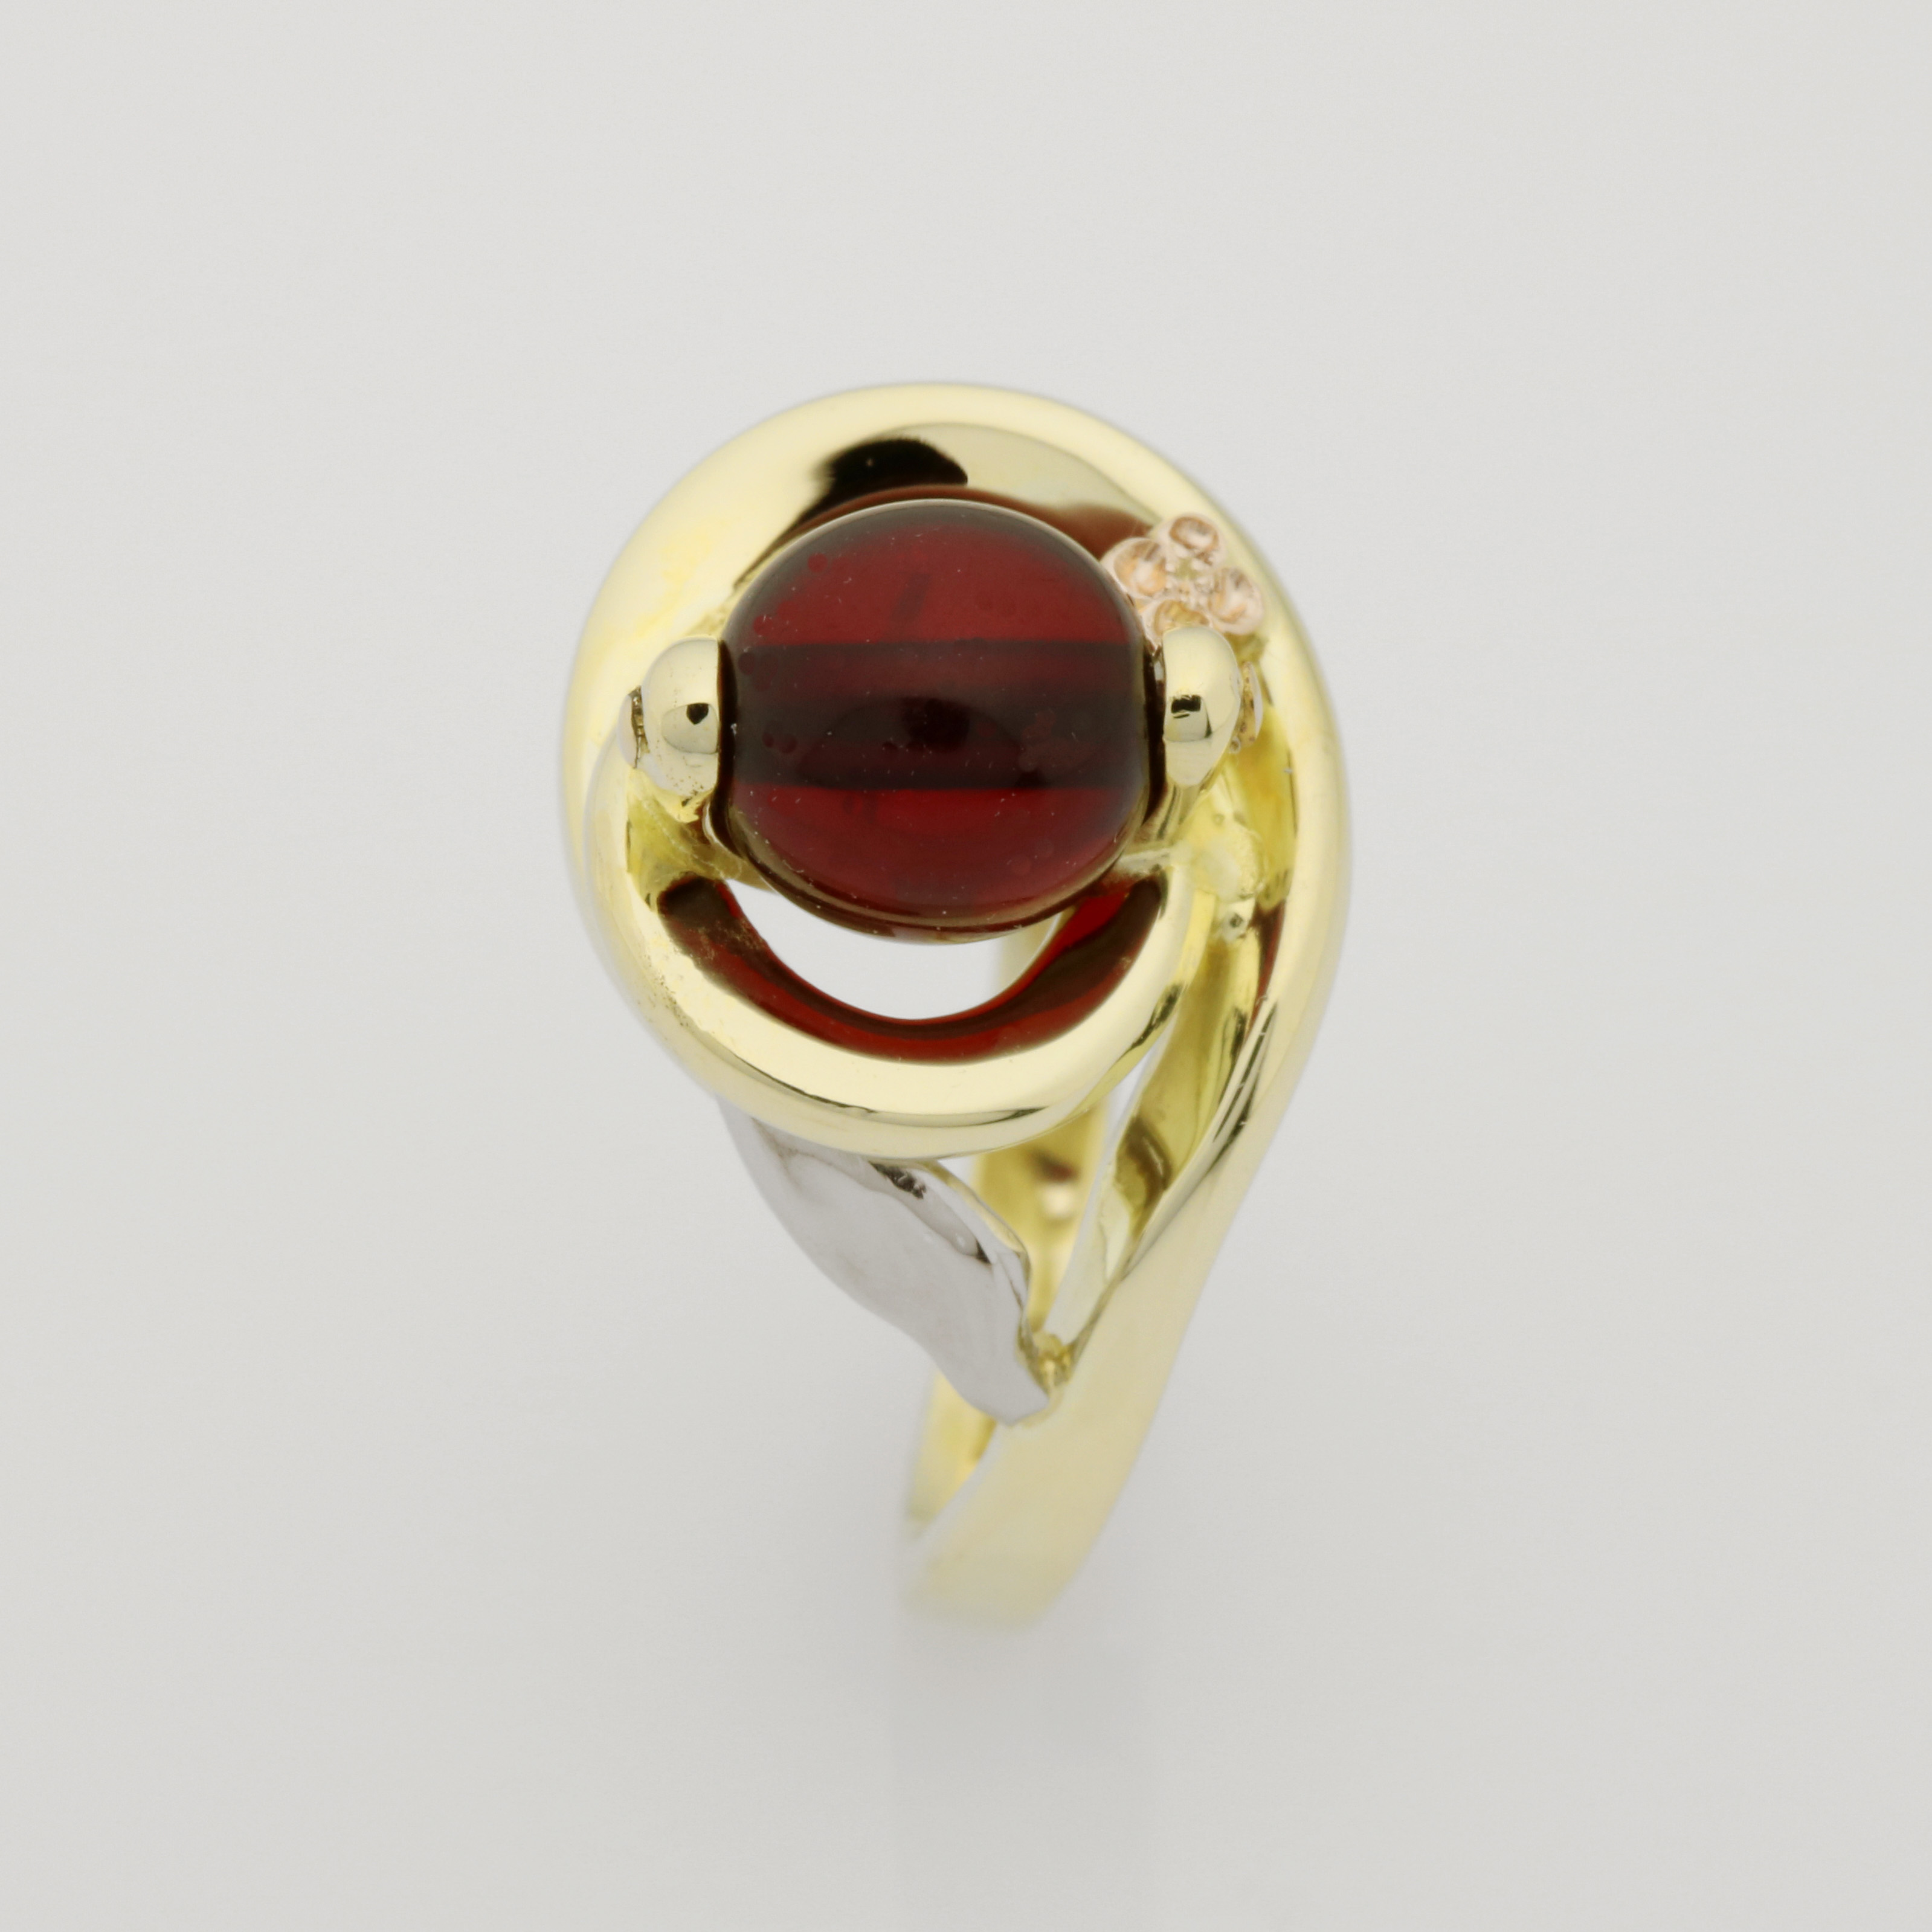 Ladies handmade 14ct yellow gold with amber bead